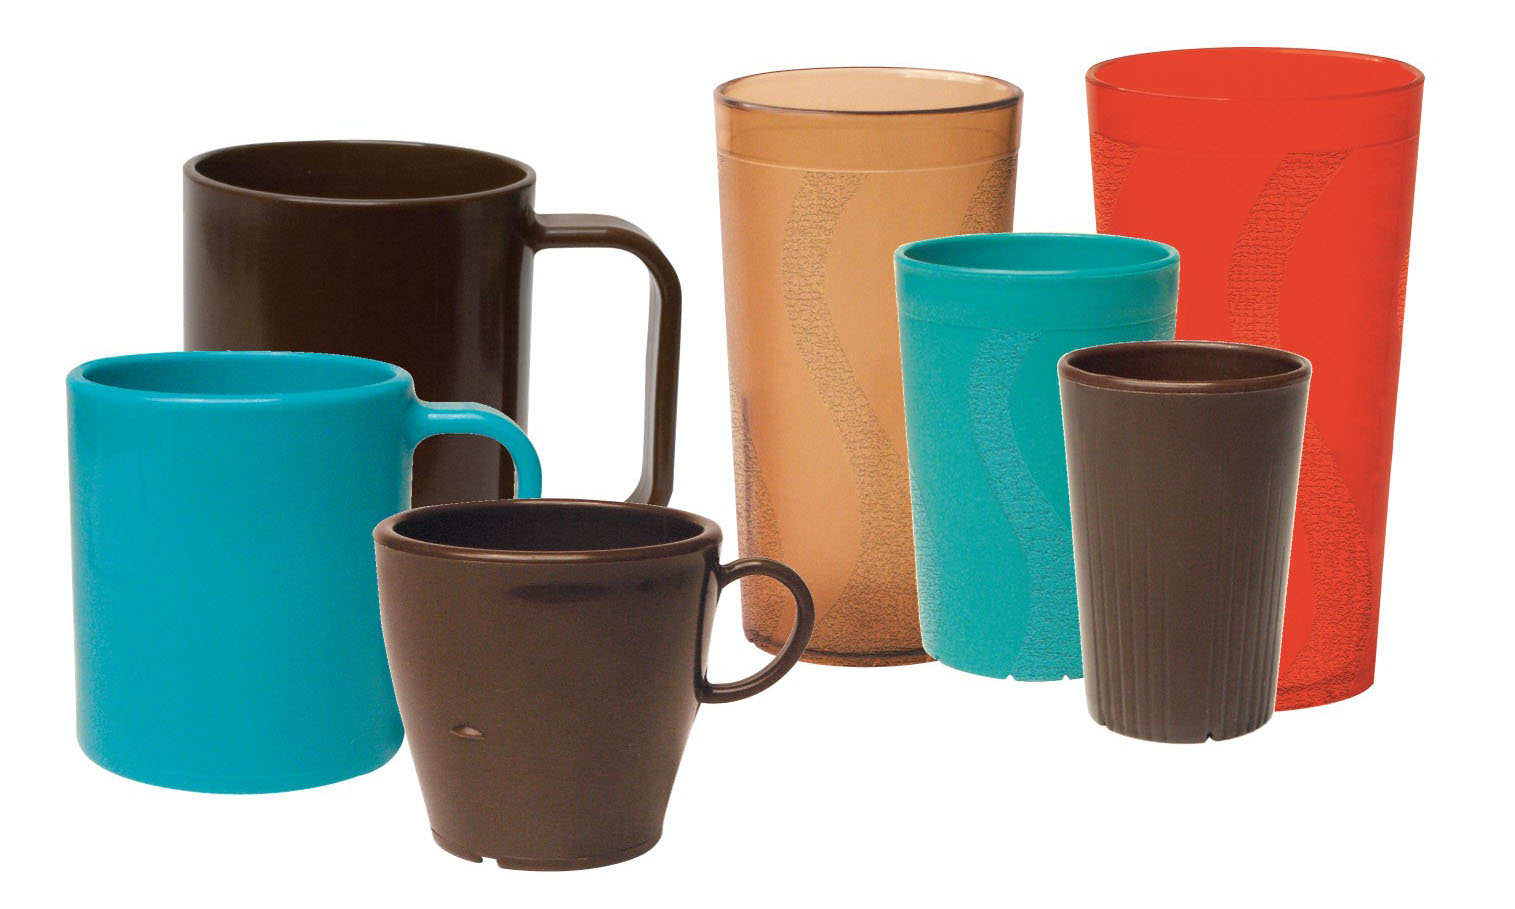 JonesZylon Cups Mugs Drinkware products